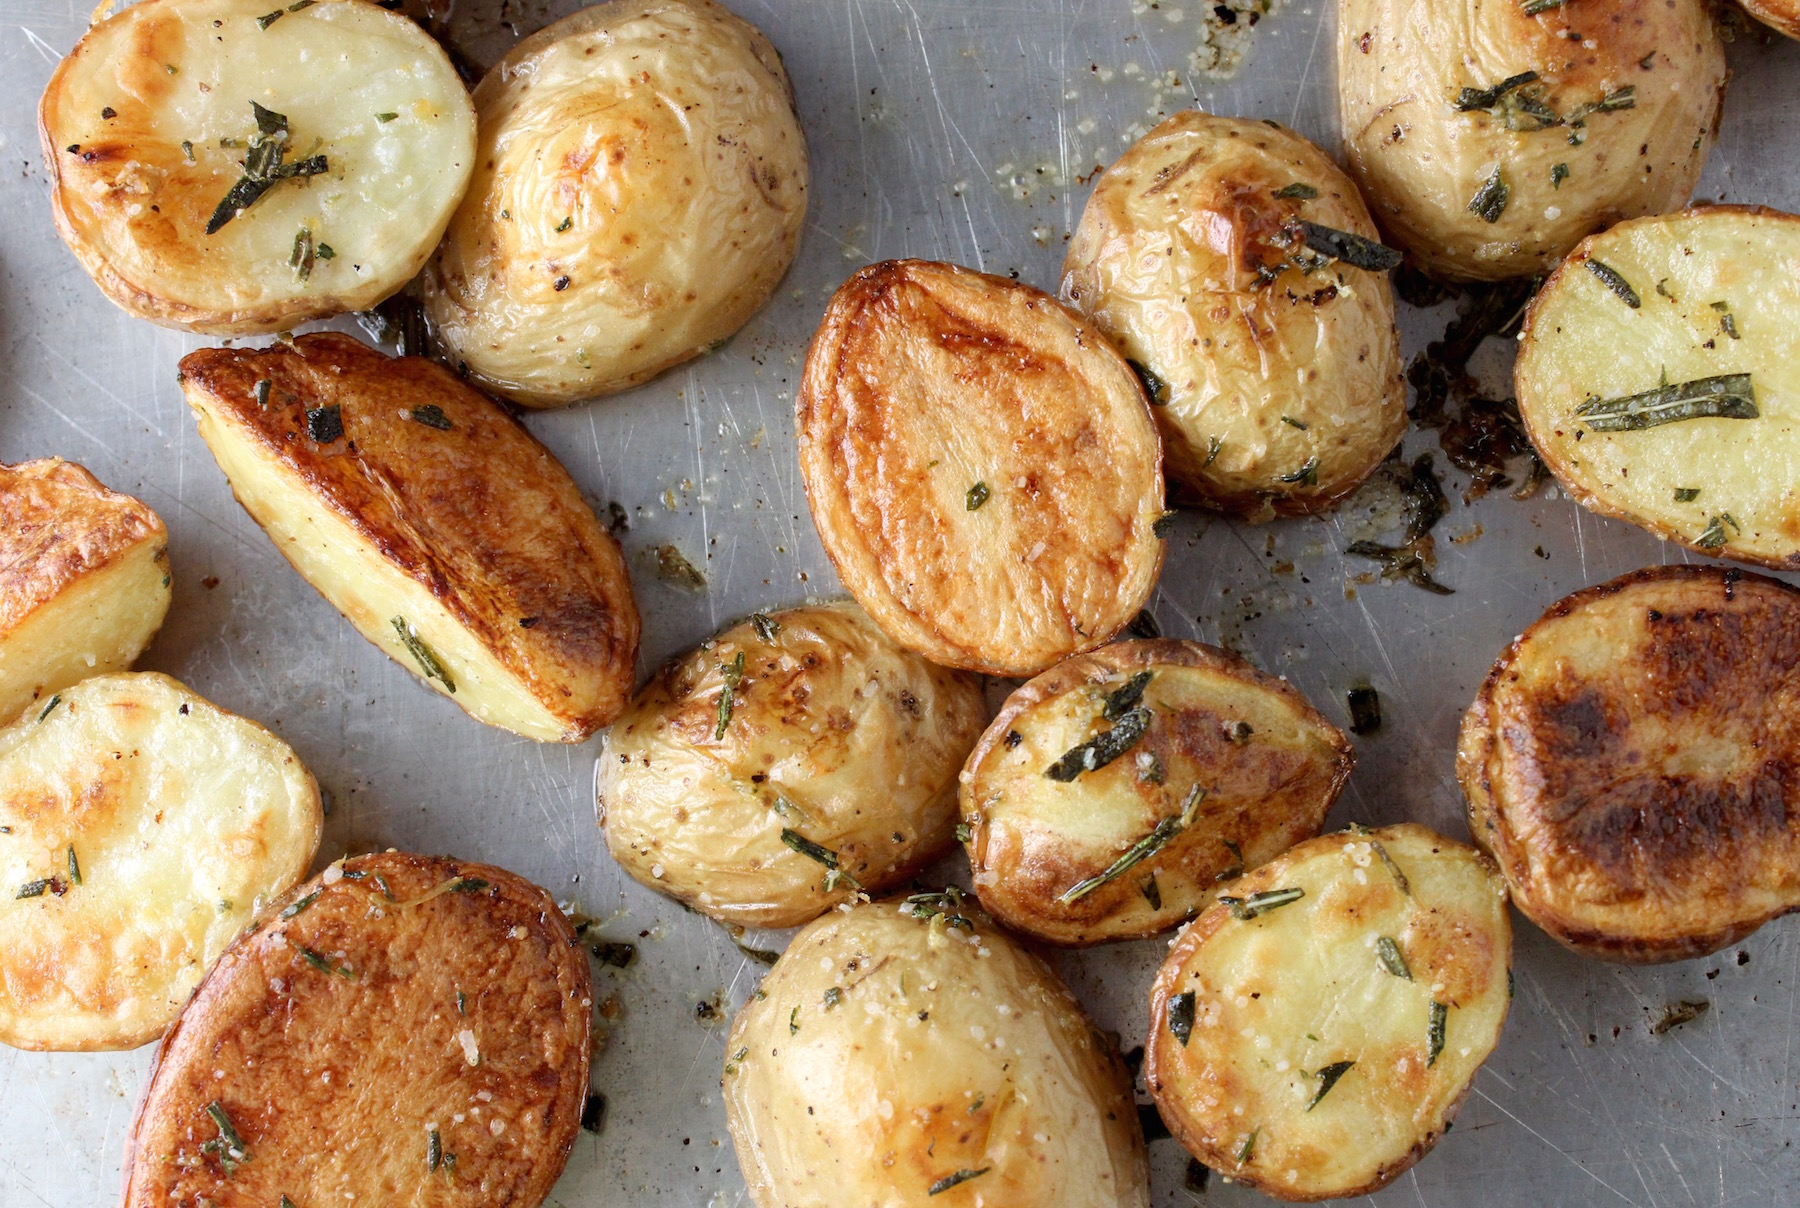 Roasted Citrus and Herb Potatoes